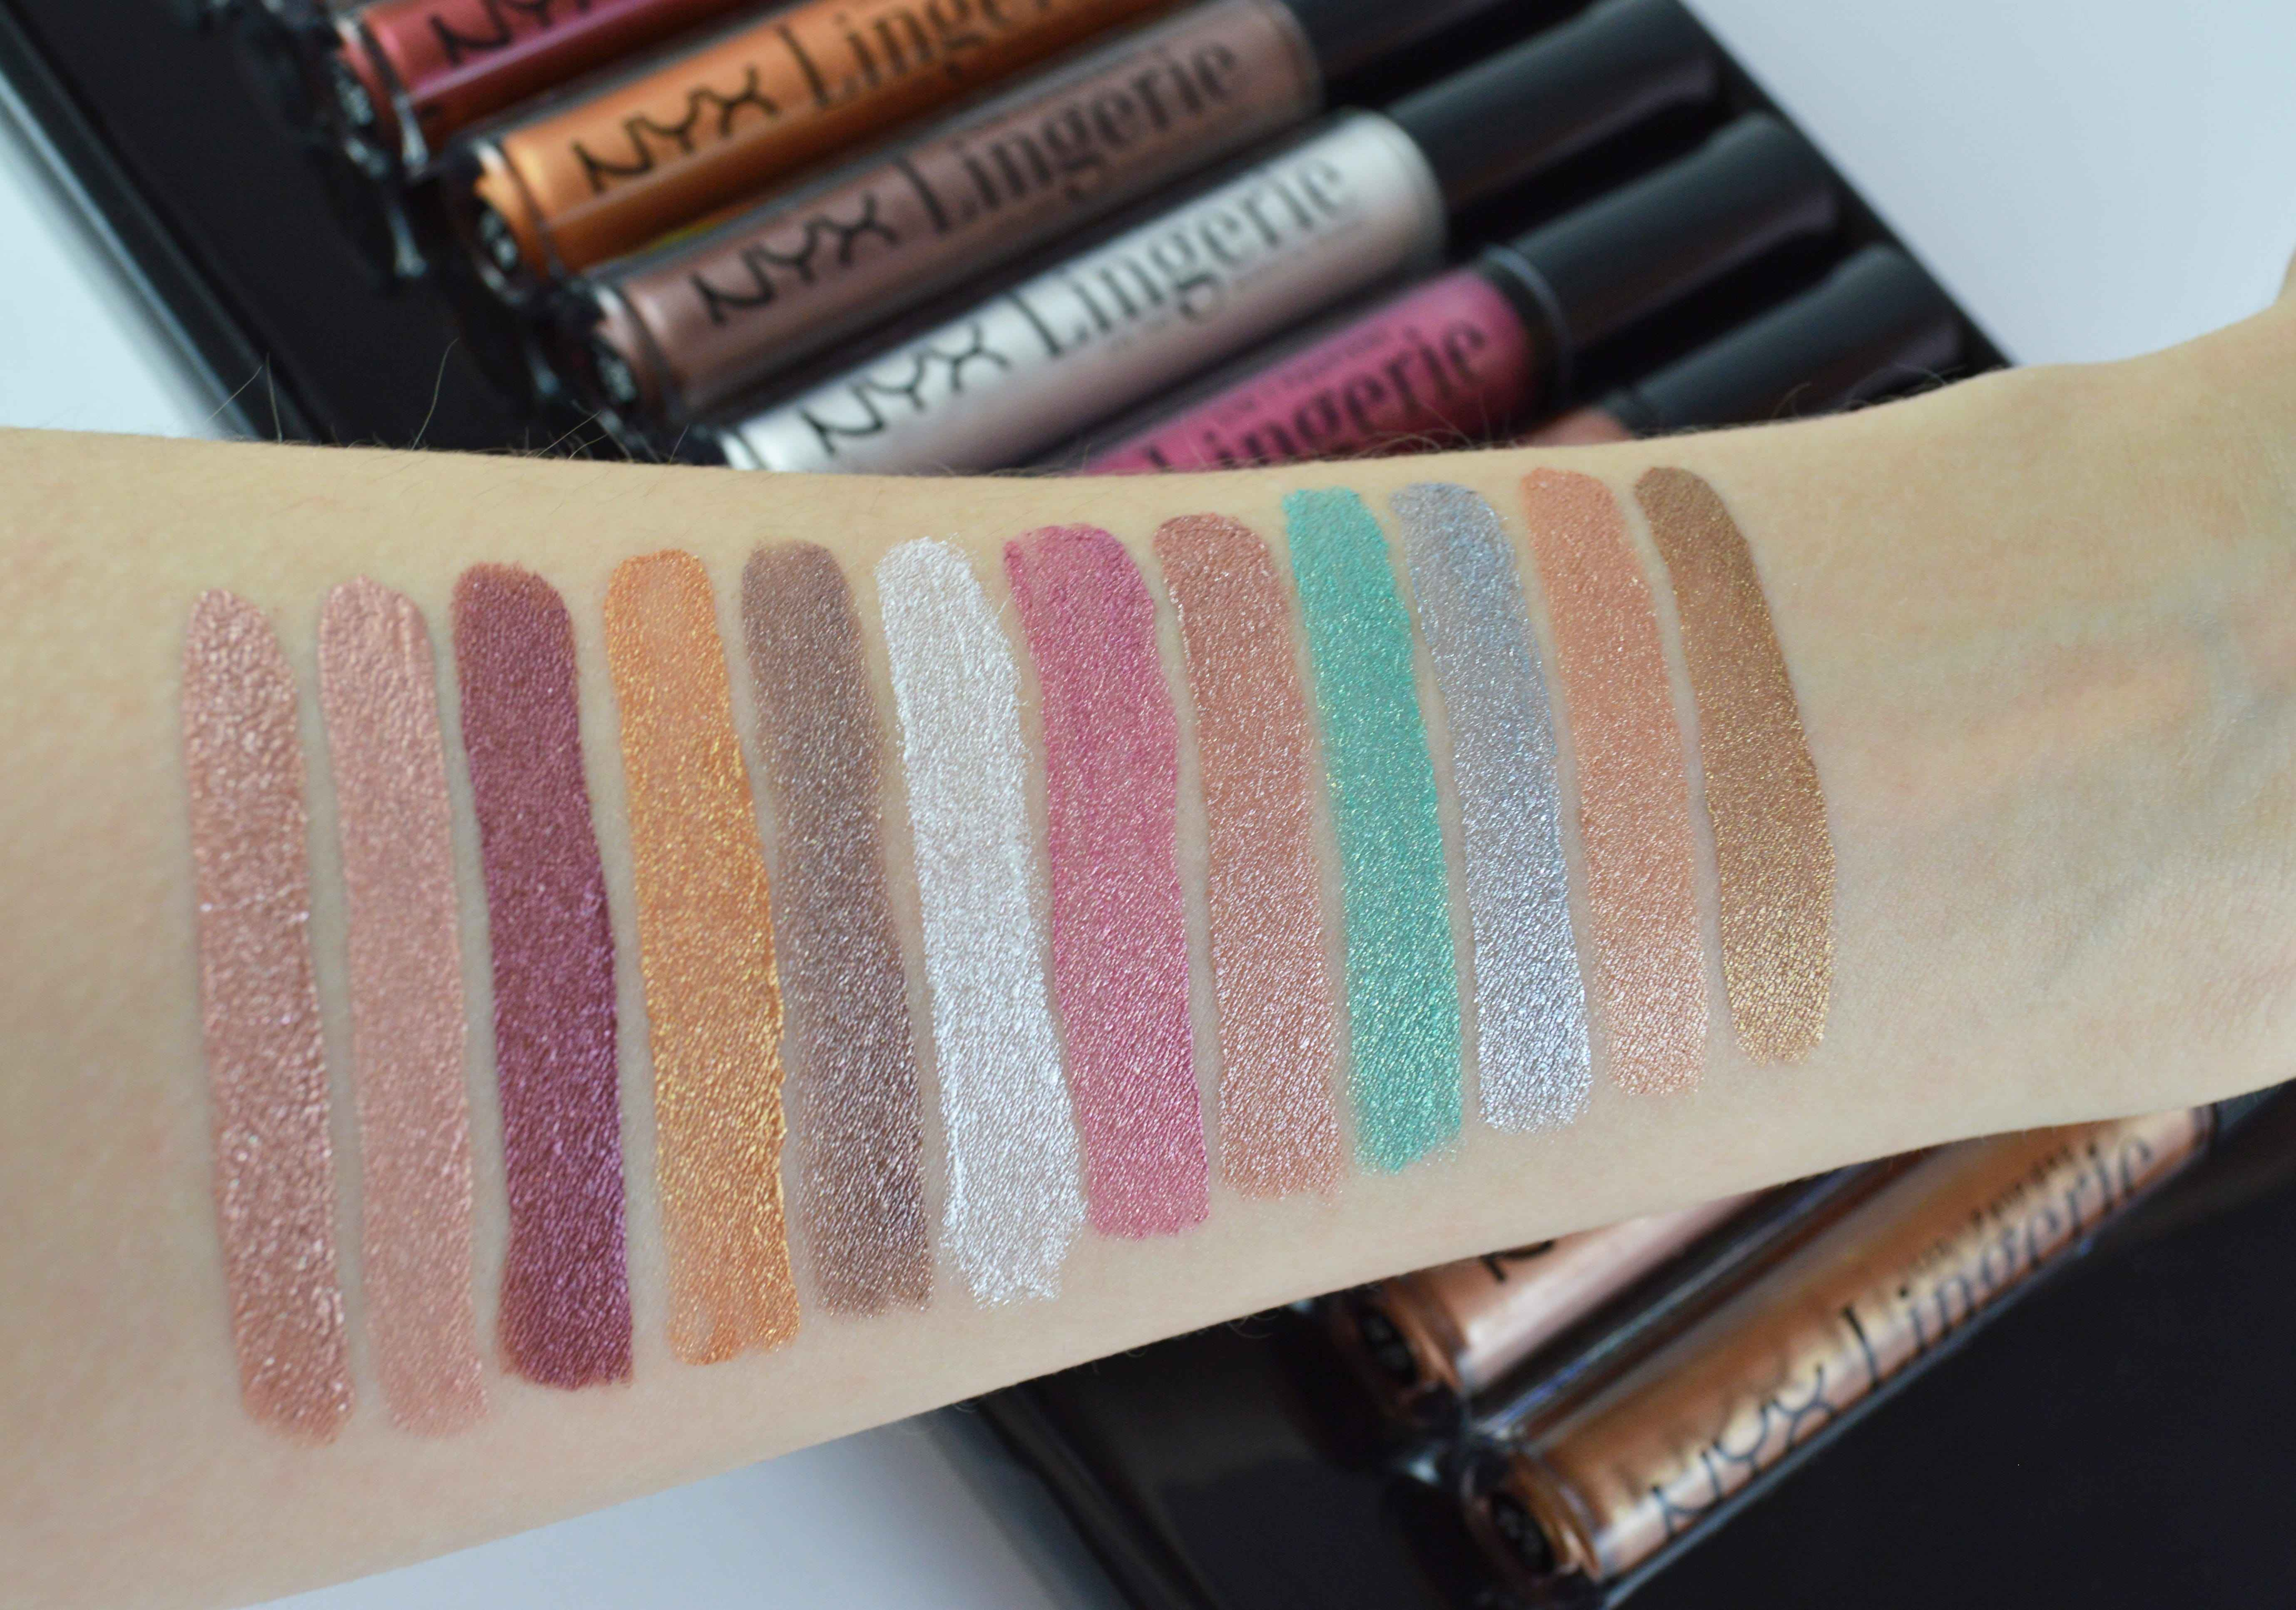 NYX Lid Lingerie Swatches